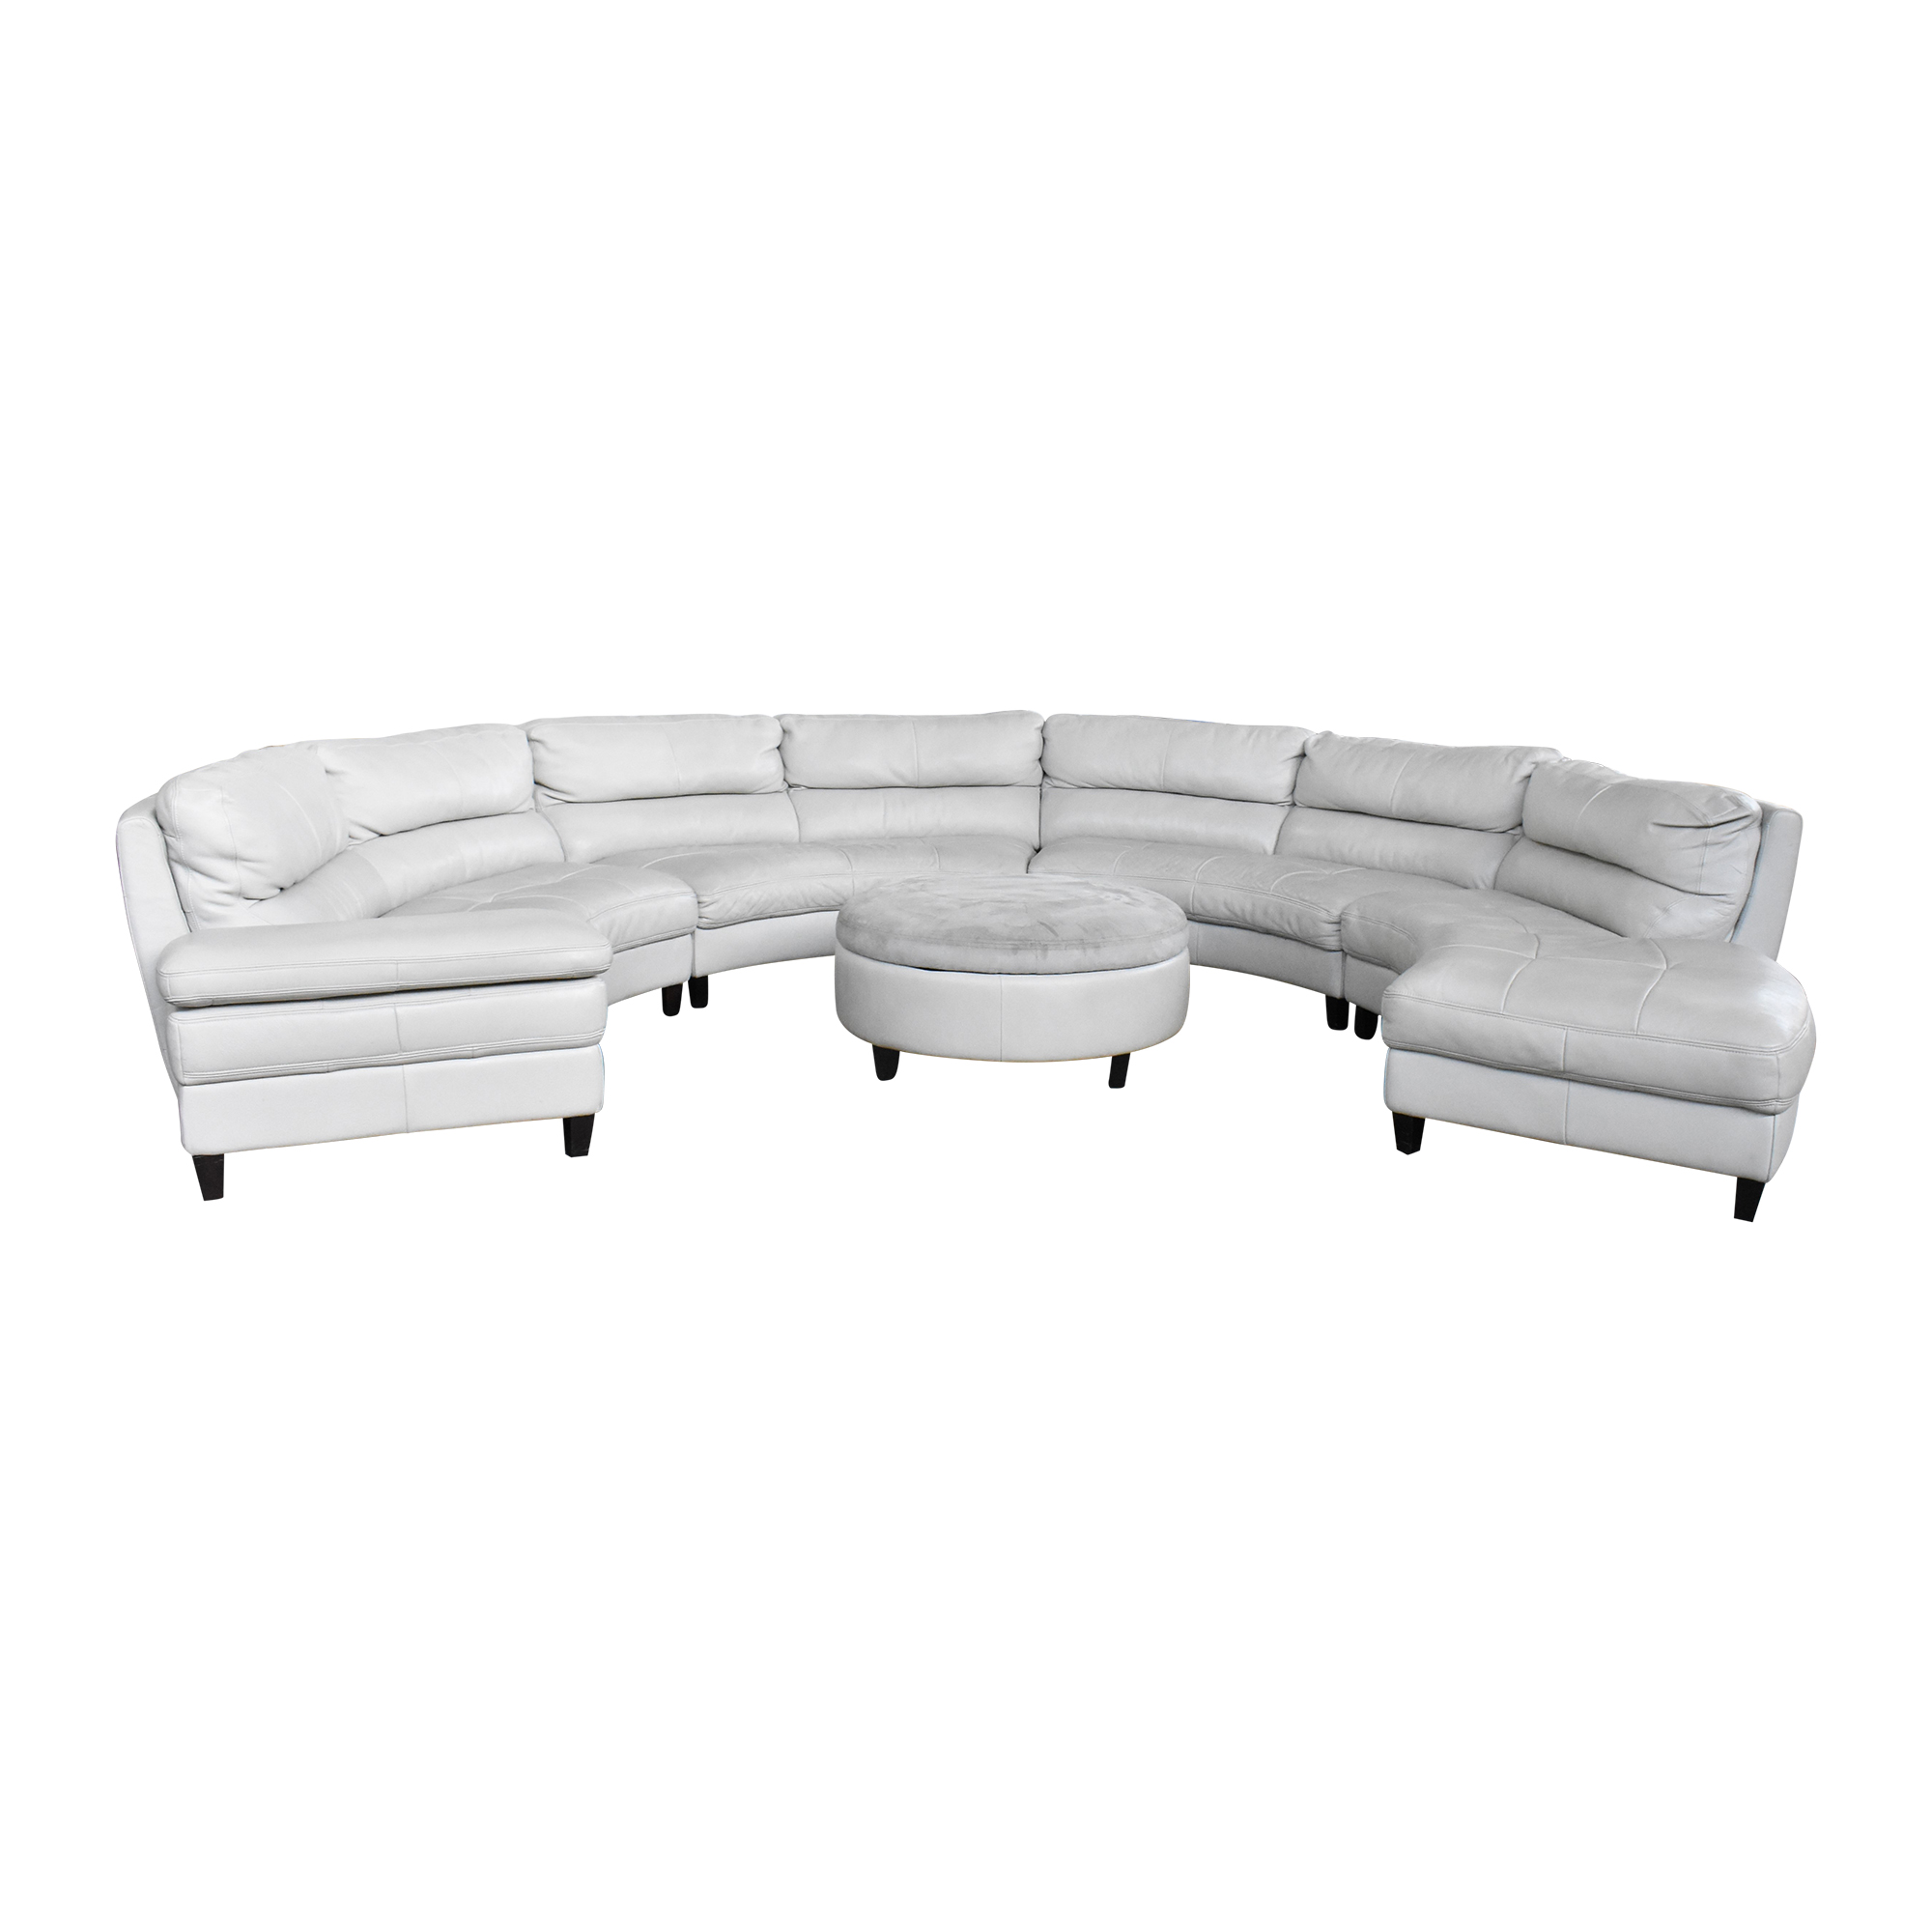 Macy's Franchesca Curve Sectional Sofa / Sectionals